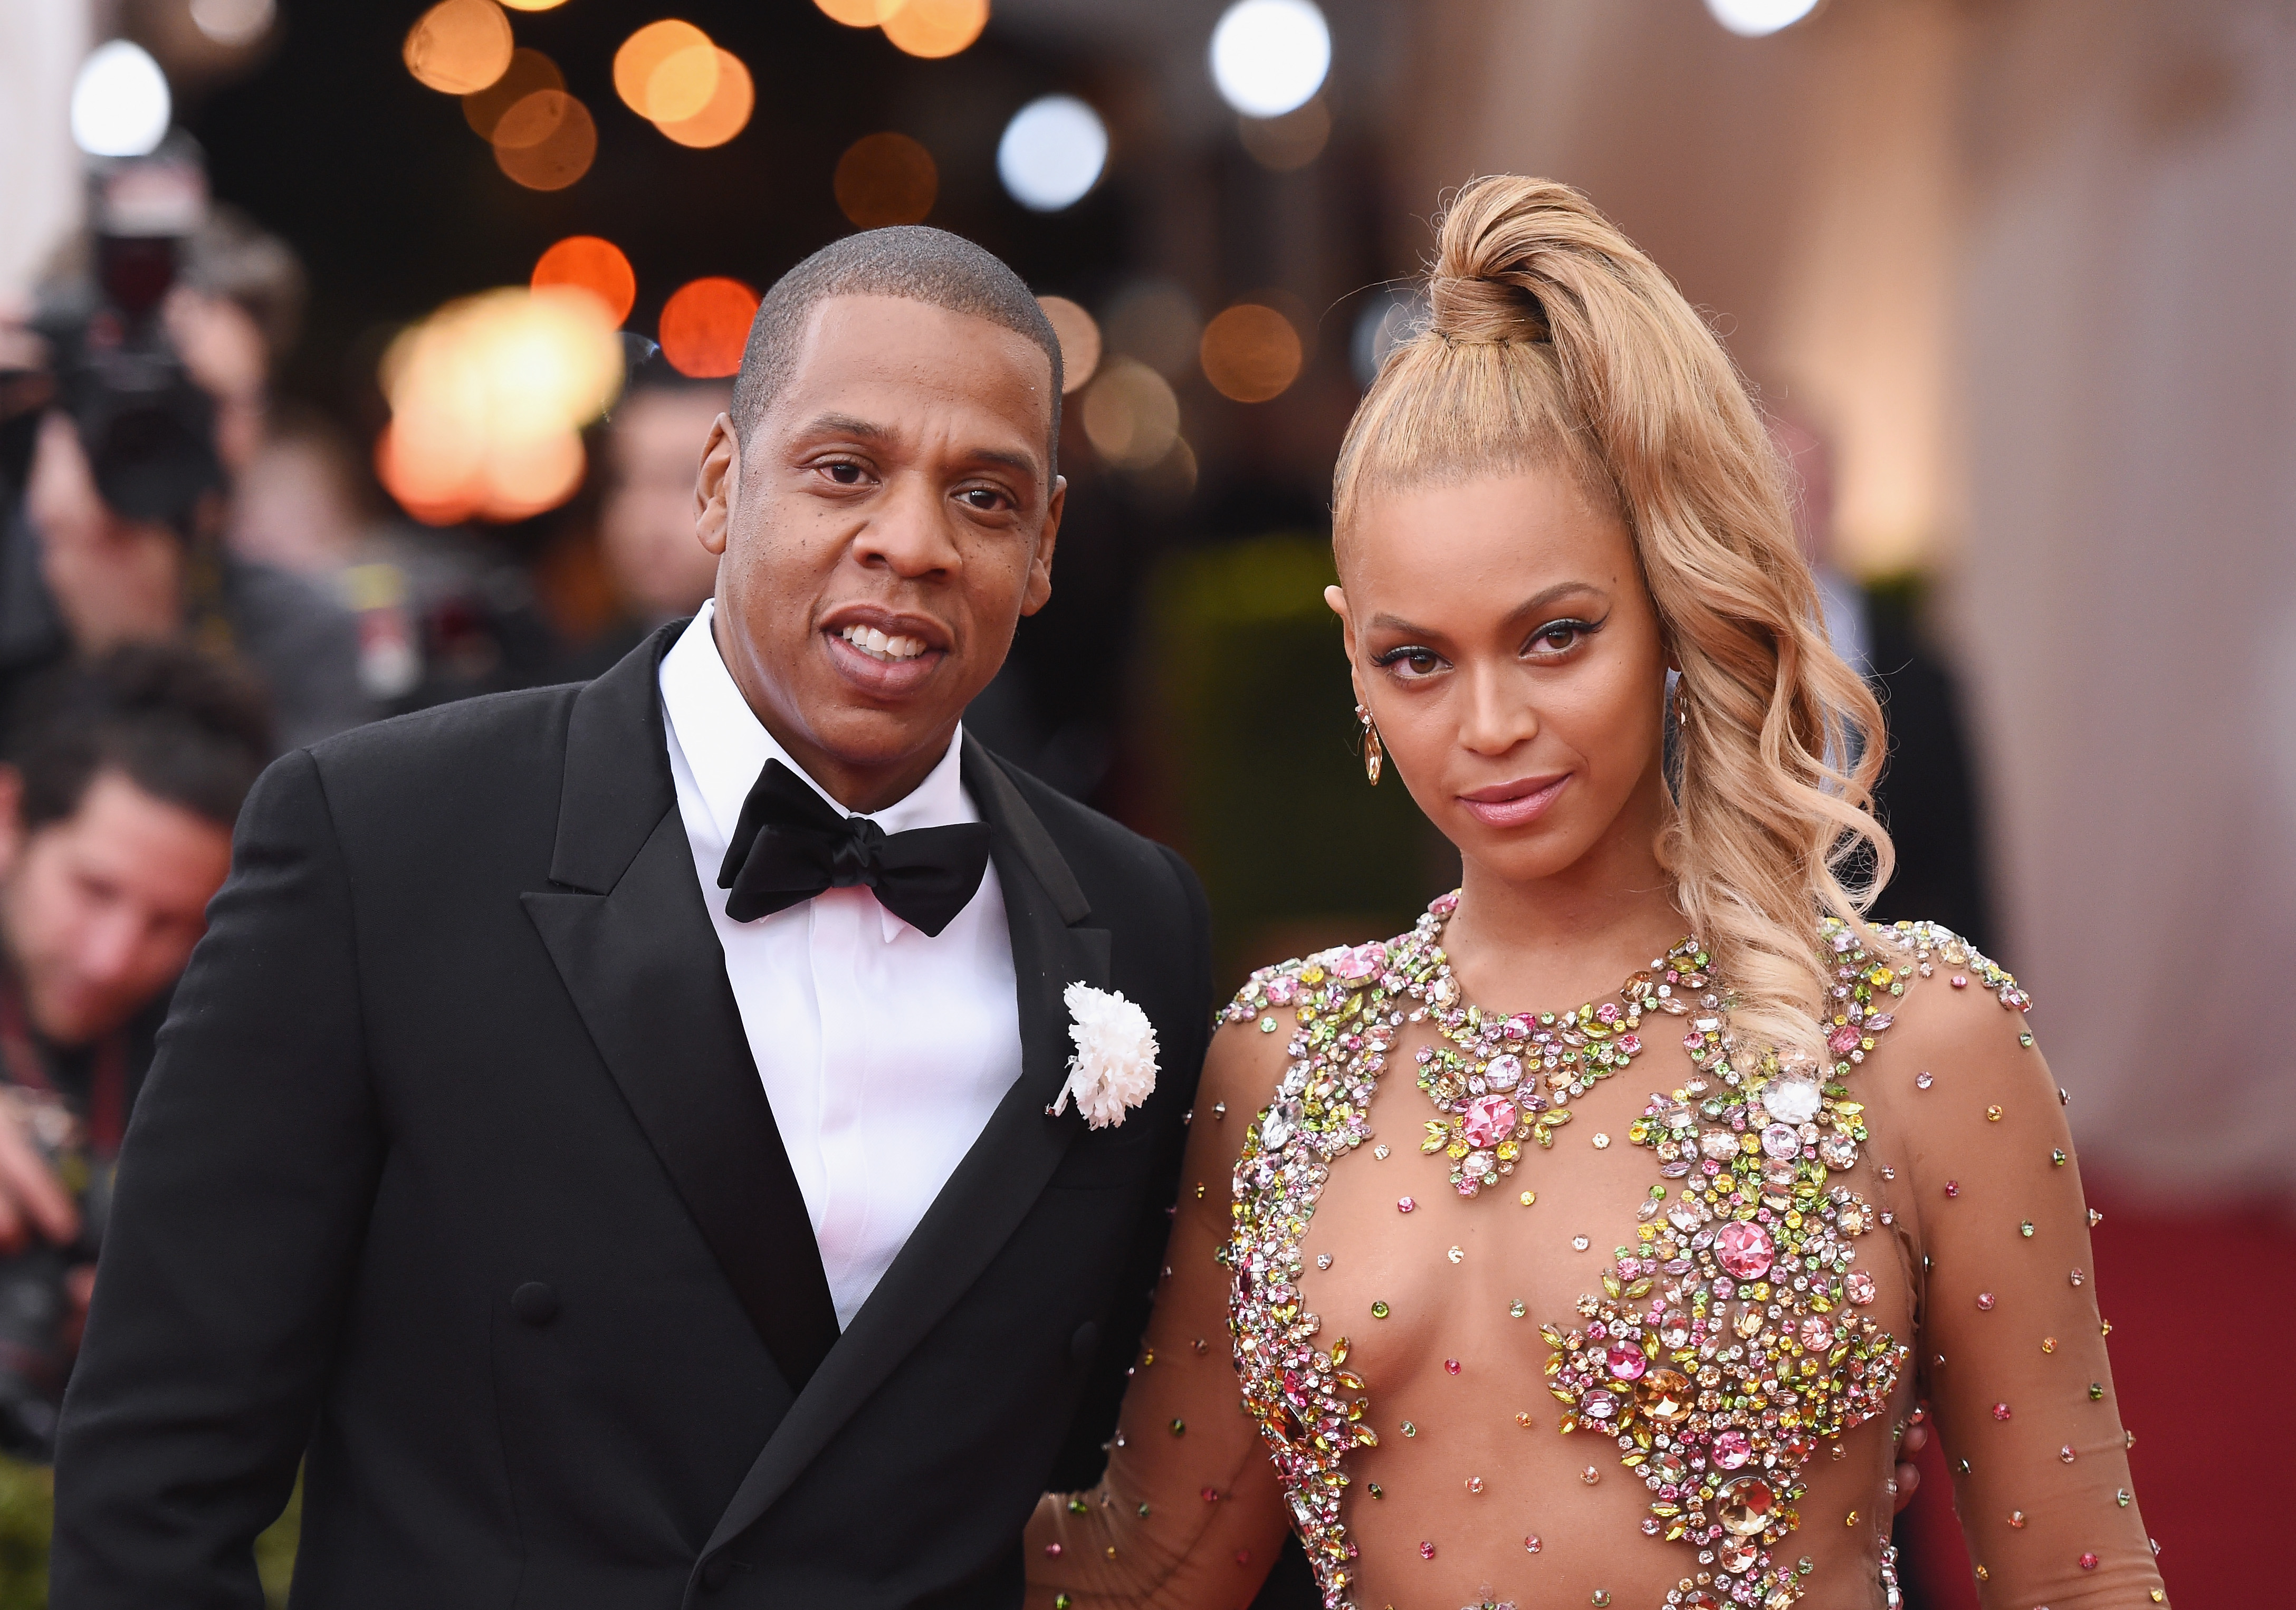 Jay Z (L) and Beyonce attend the 'China: Through The Looking Glass' Costume Institute Benefit Gala at the Metropolitan Museum of Art on May 4, 2015 in New York City. (Photo by Hubert Boesl/picture alliance via Getty Images)